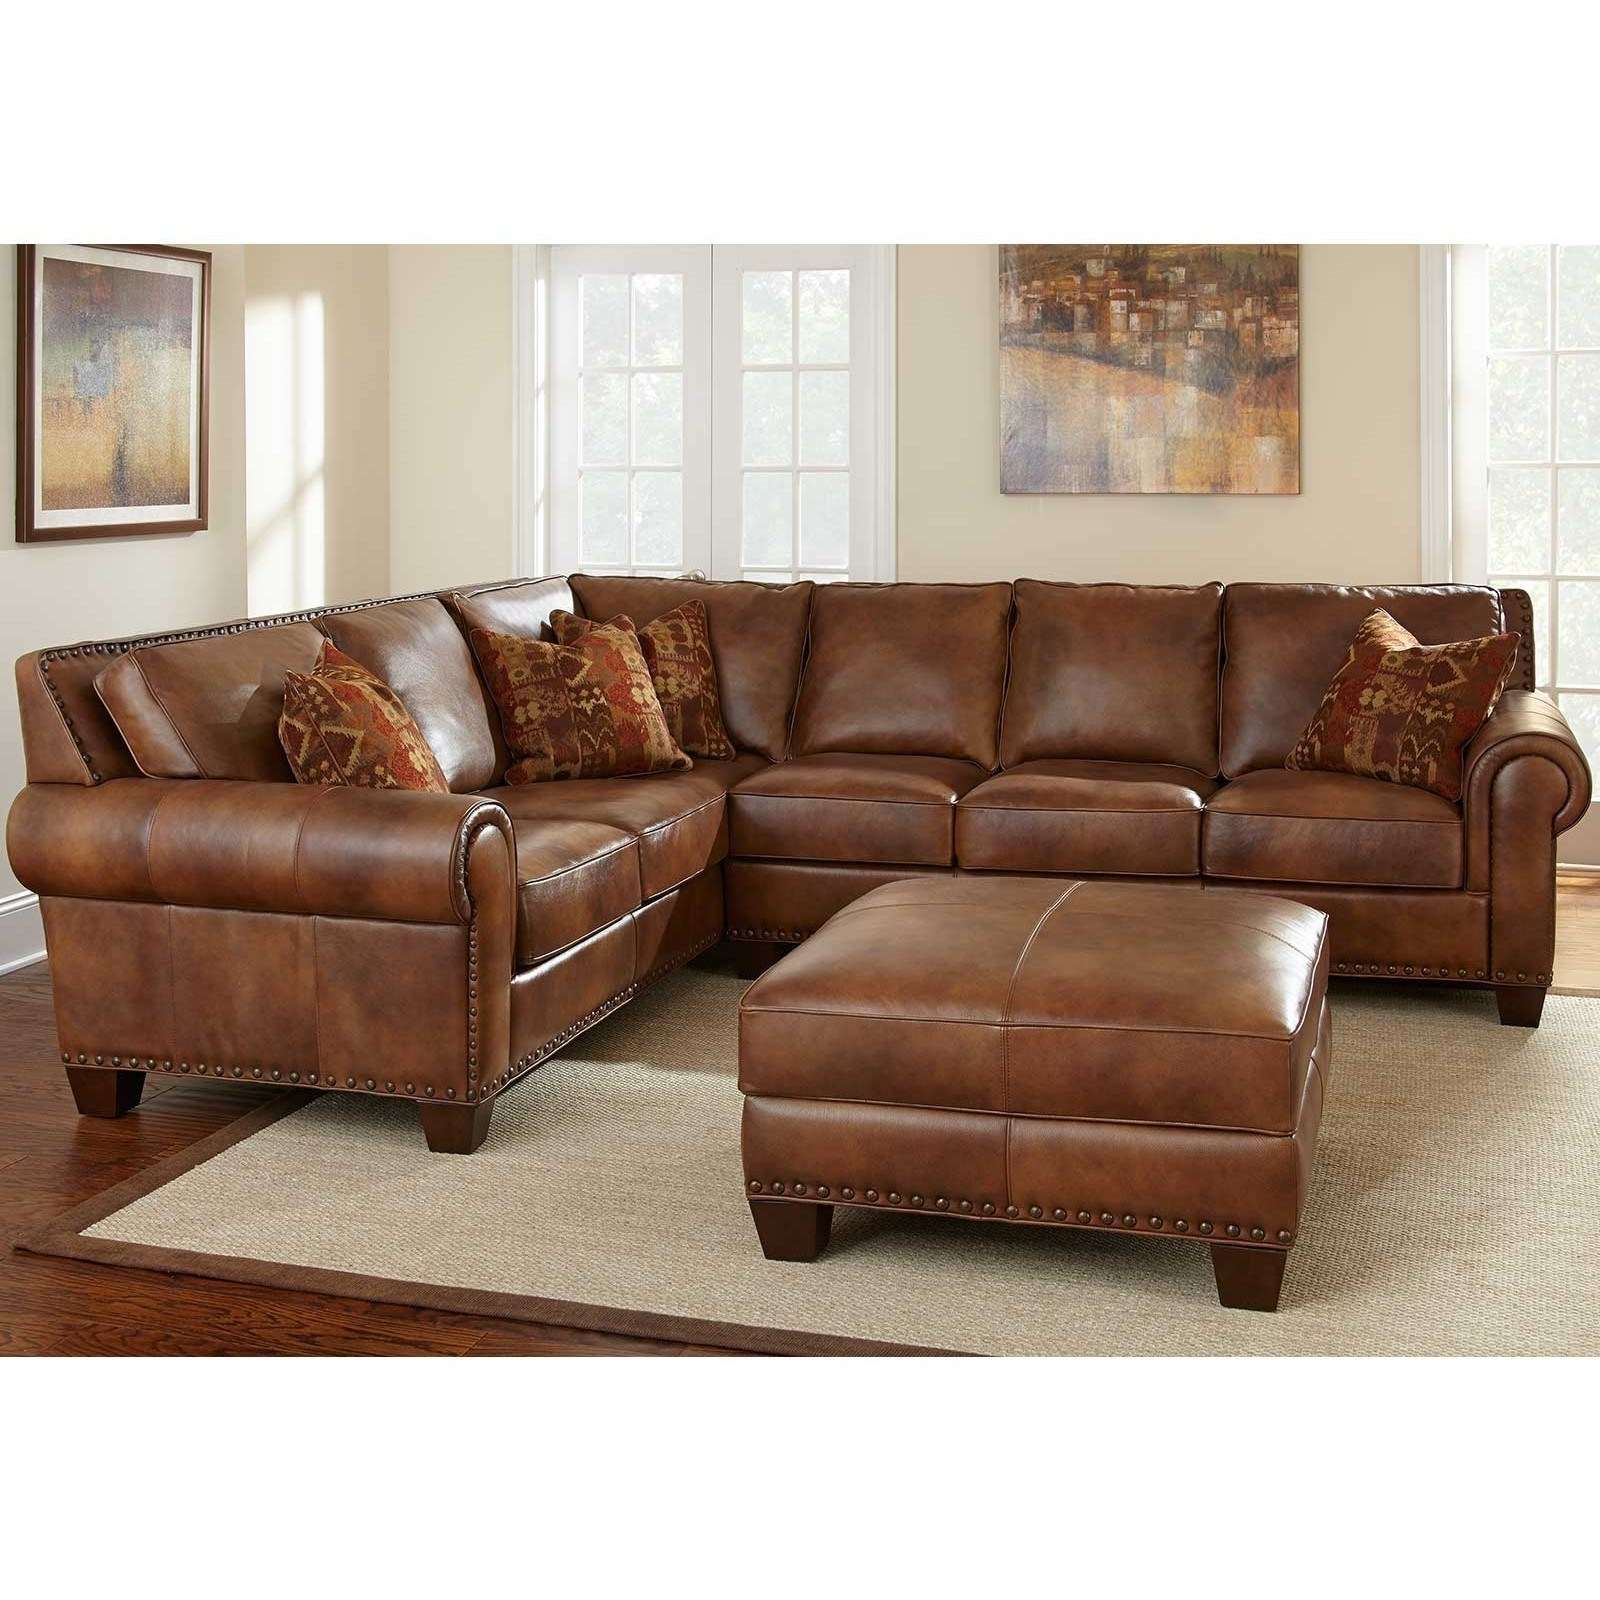 On Sale Sectional Sofas Inside Most Popular Leather Sectional Sofas (View 9 of 20)